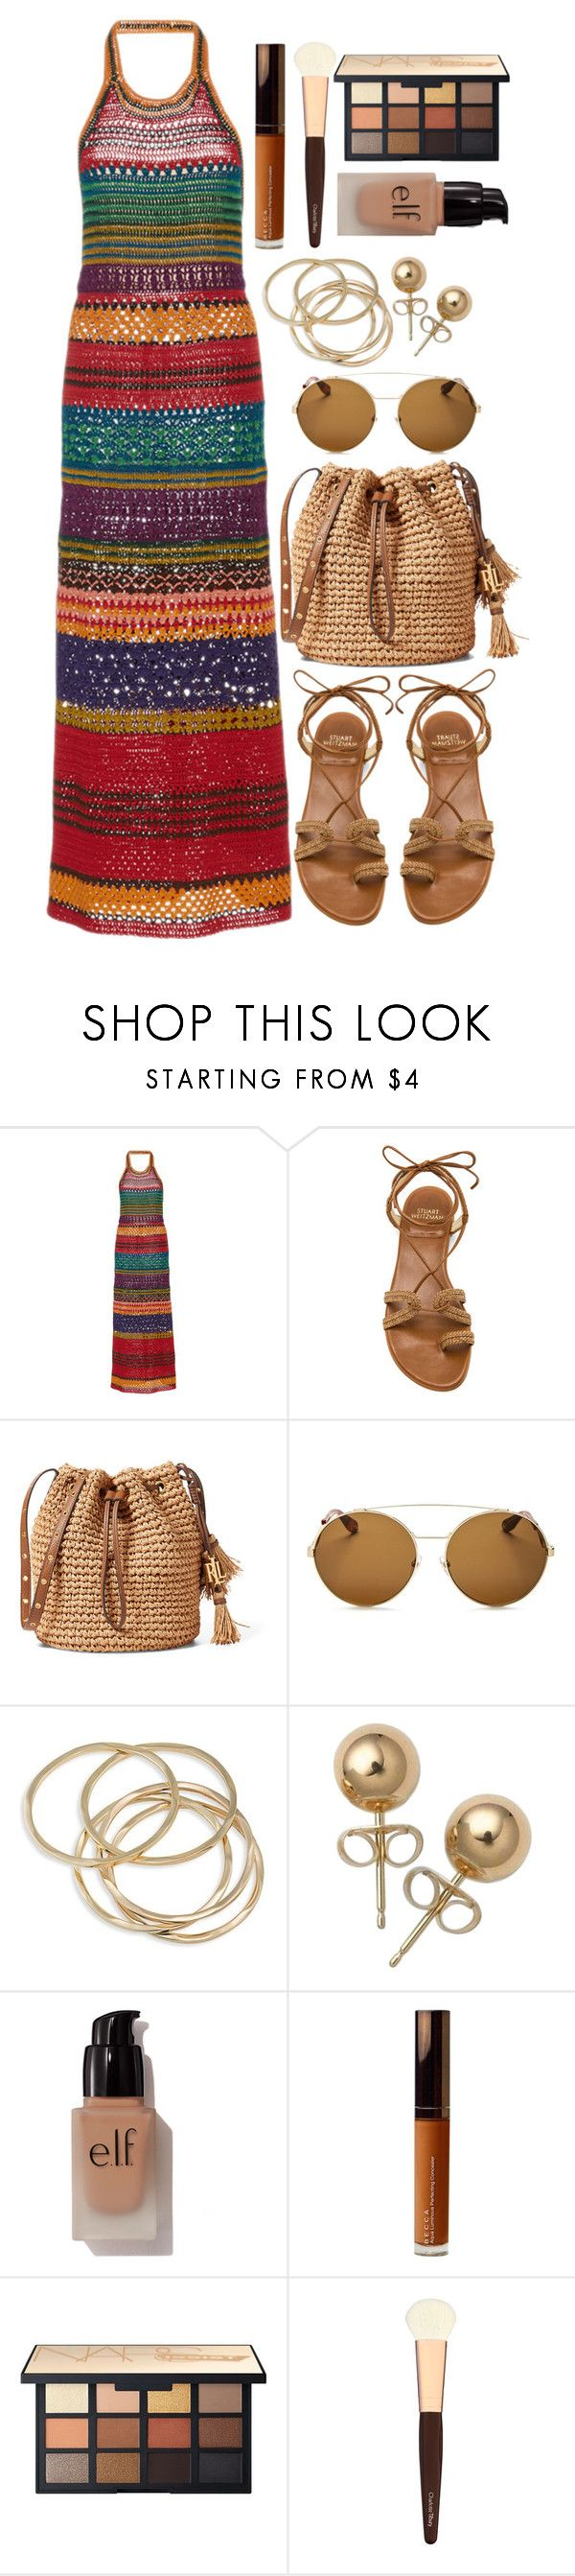 """""""Untitled #4595"""" by natalyasidunova ❤ liked on Polyvore featuring Spencer Vladimir, Stuart Weitzman, Givenchy, ABS by Allen Schwartz, Bling Jewelry, e.l.f., Becca, NARS Cosmetics and Charlotte Tilbury"""